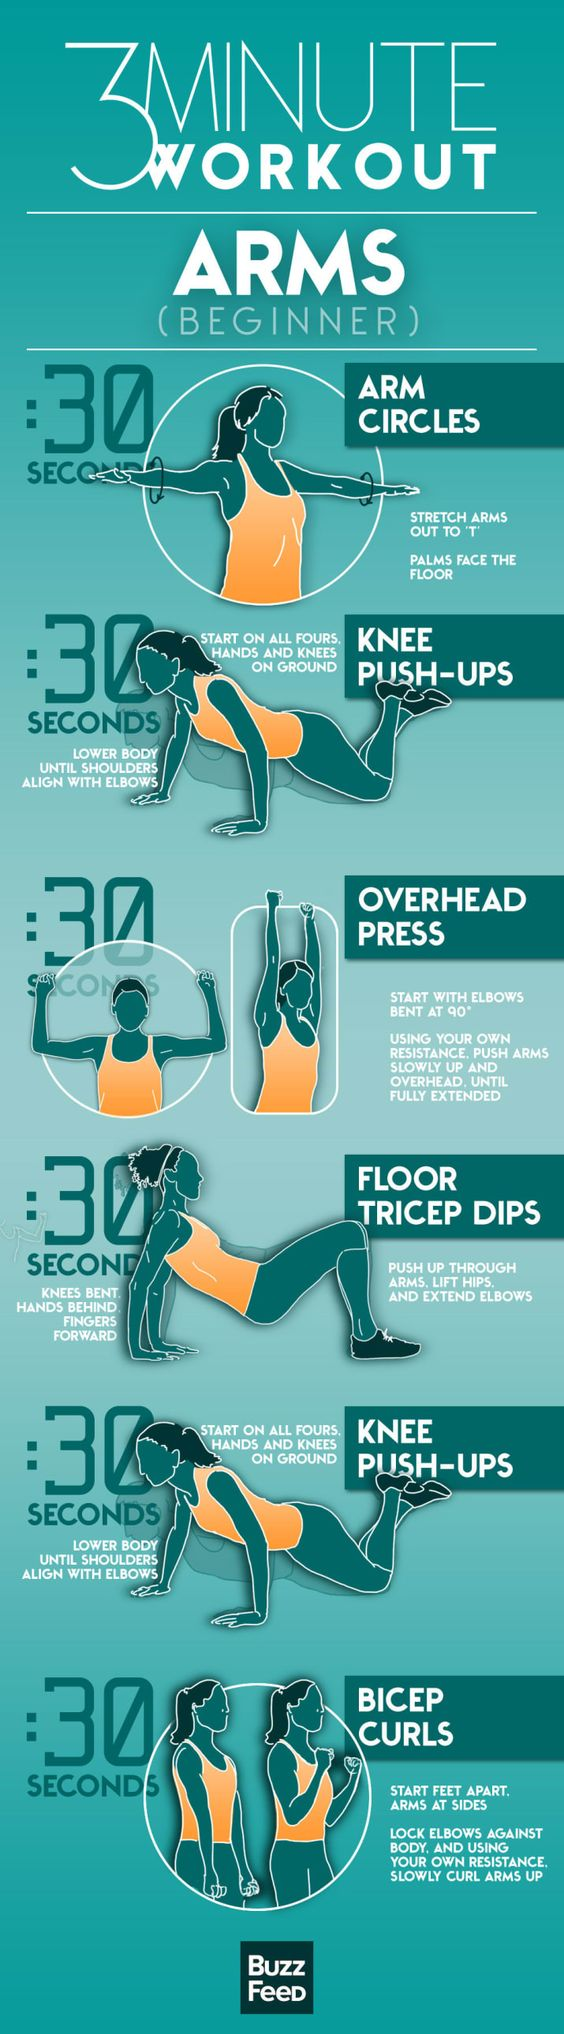 quick workouts for arms